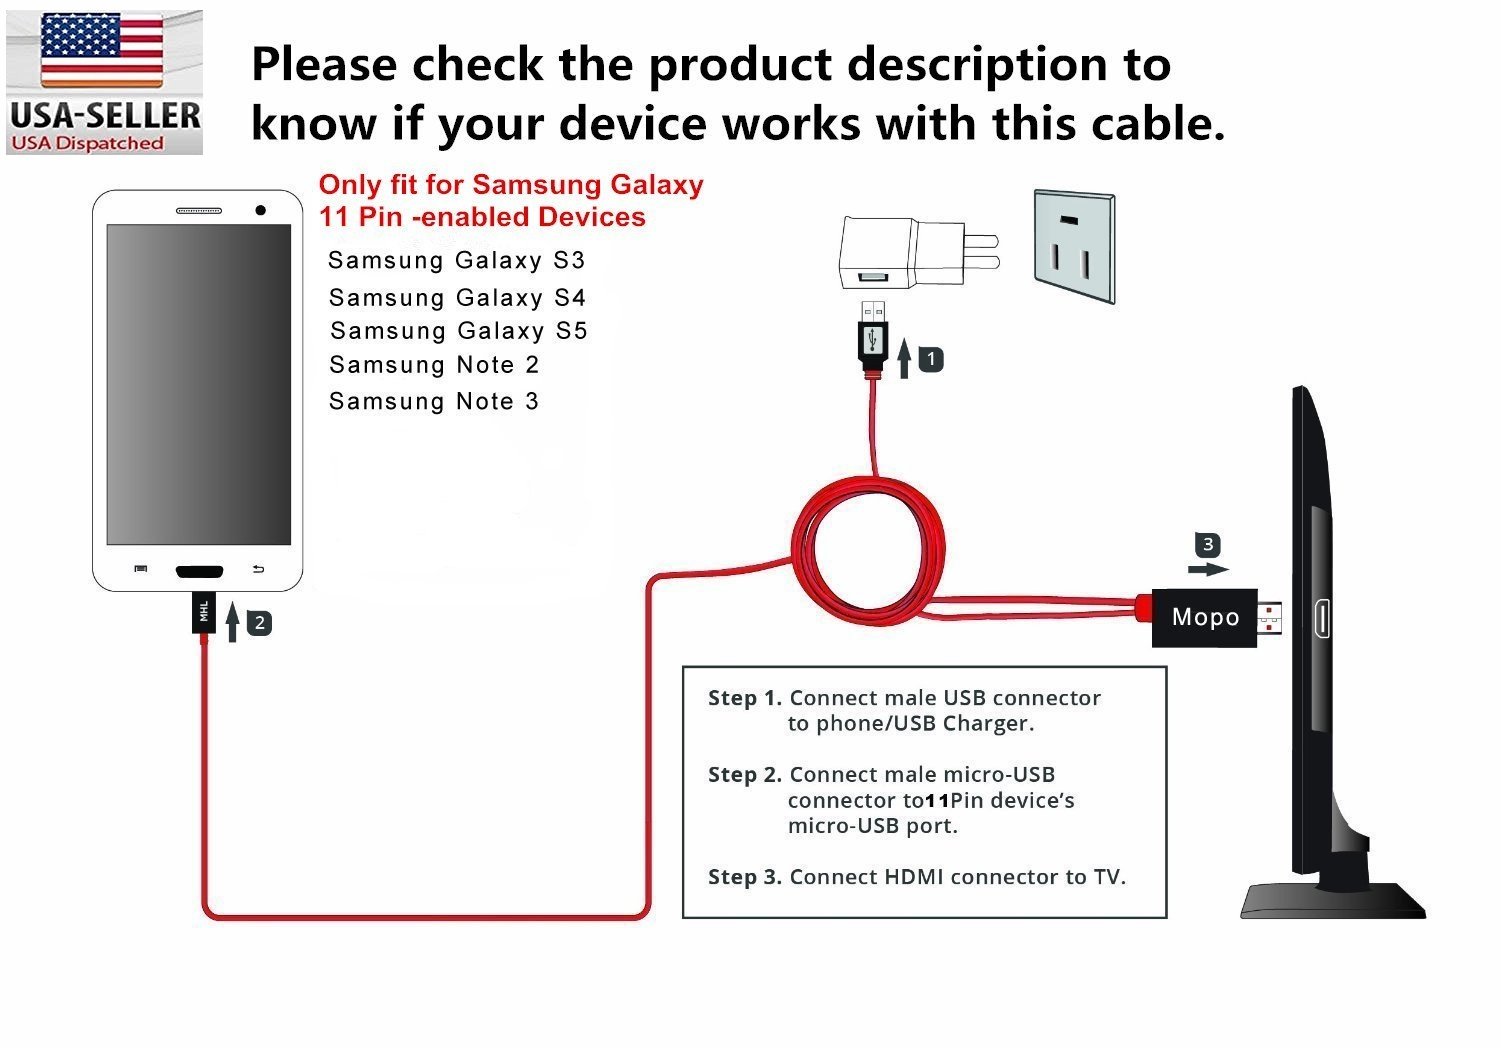 hd dta to hdmi connections diagrams wiring diagram for vga to hdmi mhl micro usb to hdmi 1080p hd tv cable adapter samsung ... #9